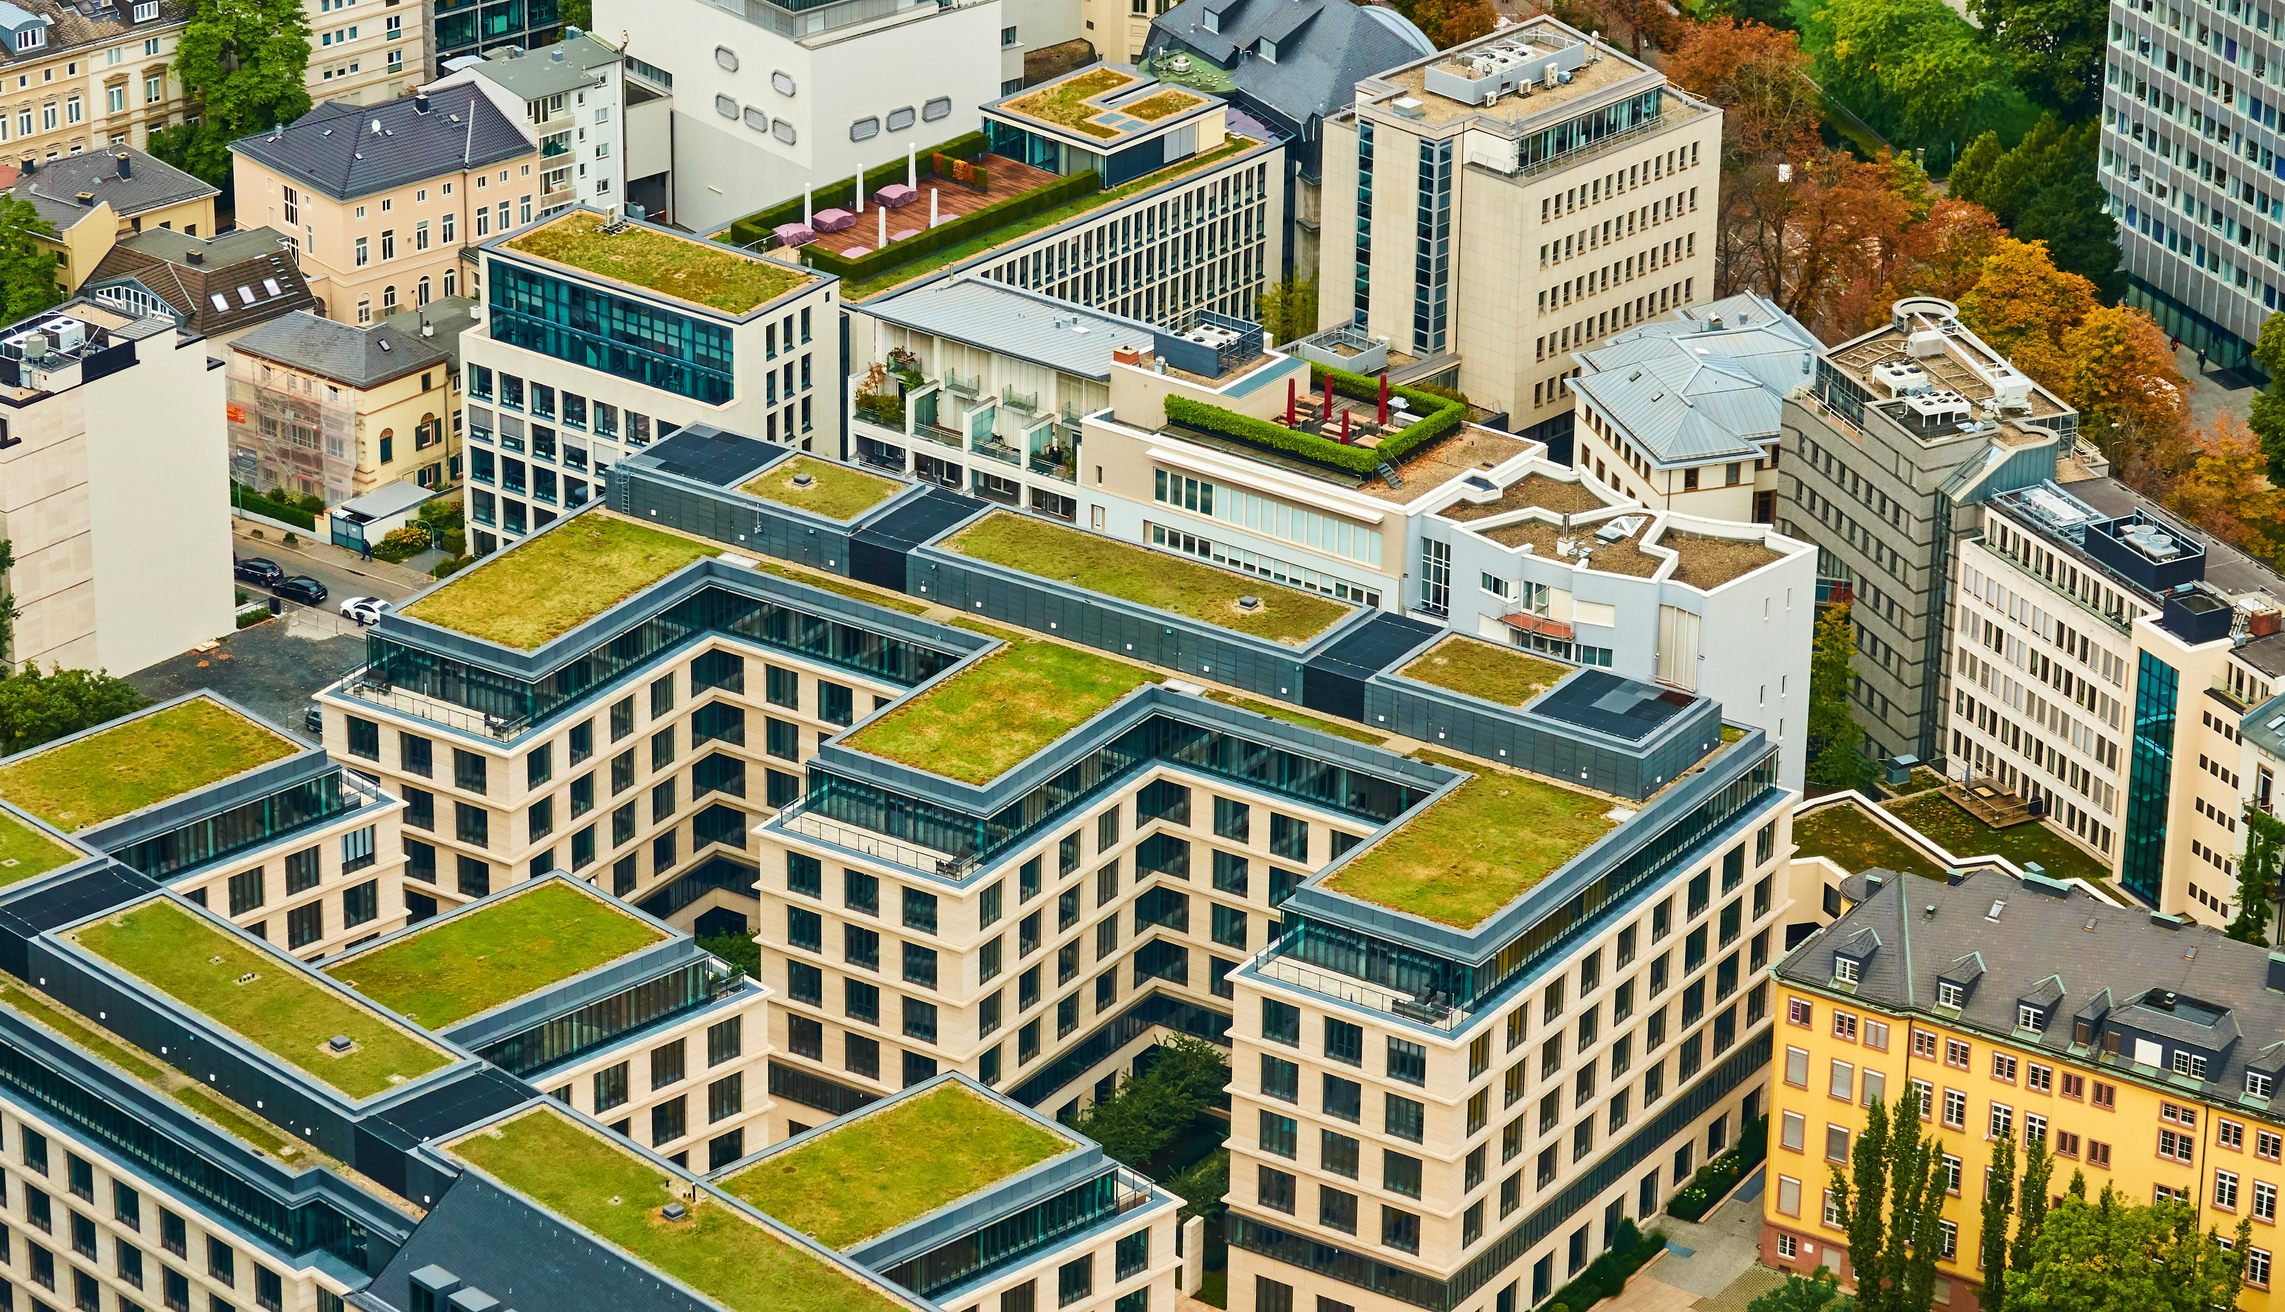 An arial view of two sustainable buildings featuring green roofs